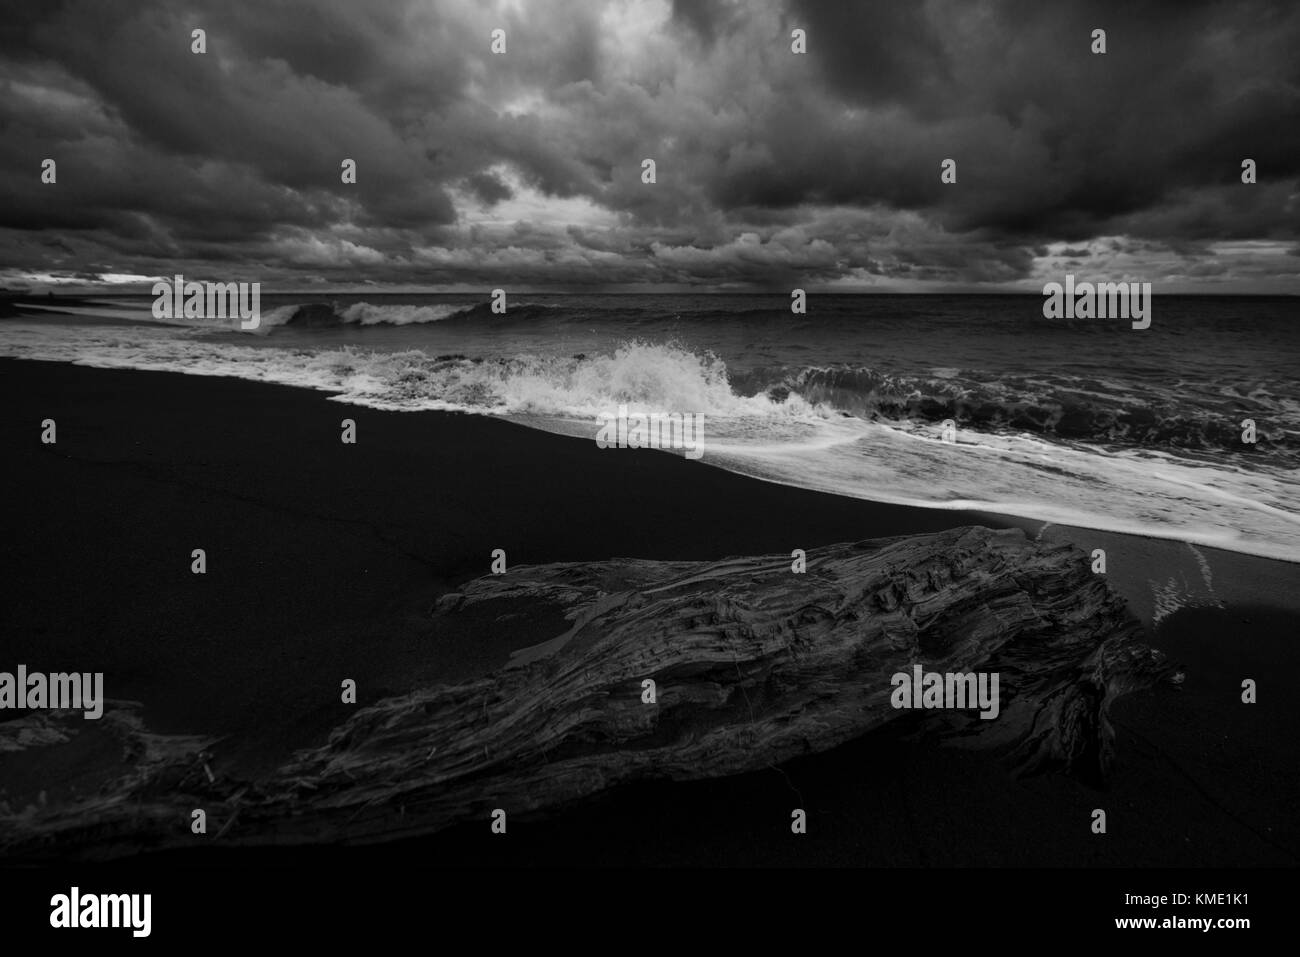 Waves rolling onto the beach during a storm - Stock Image